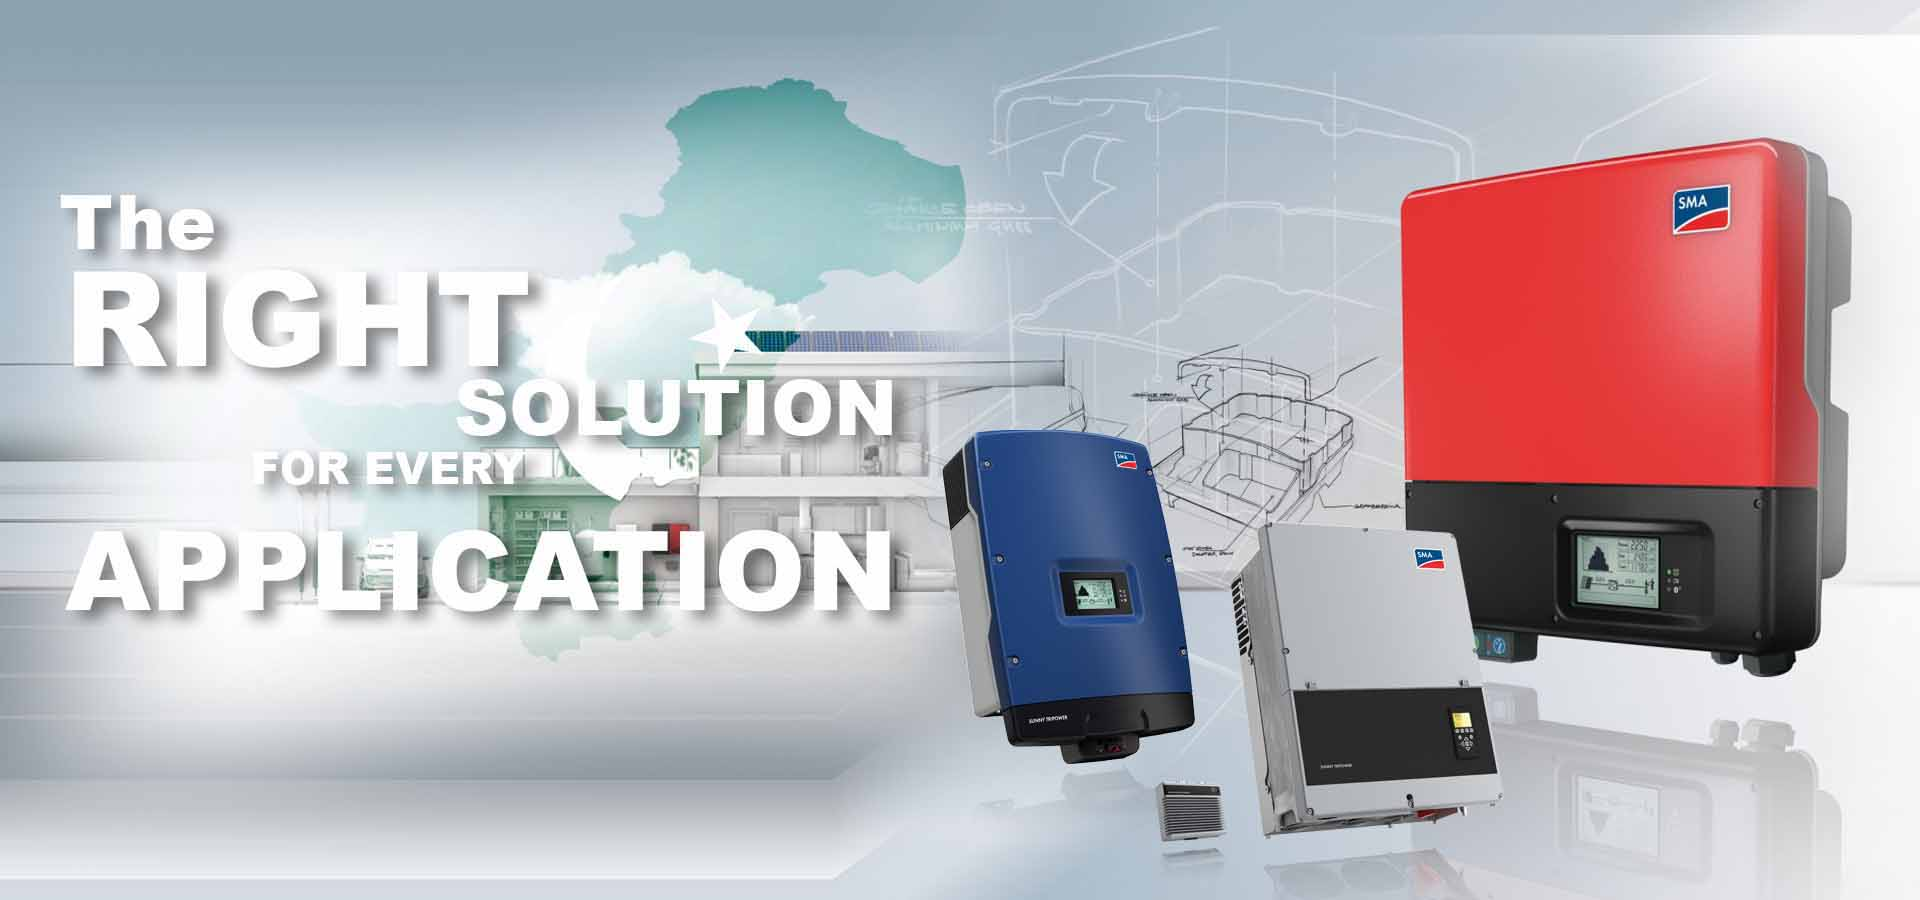 sma inverters the right solution for every application